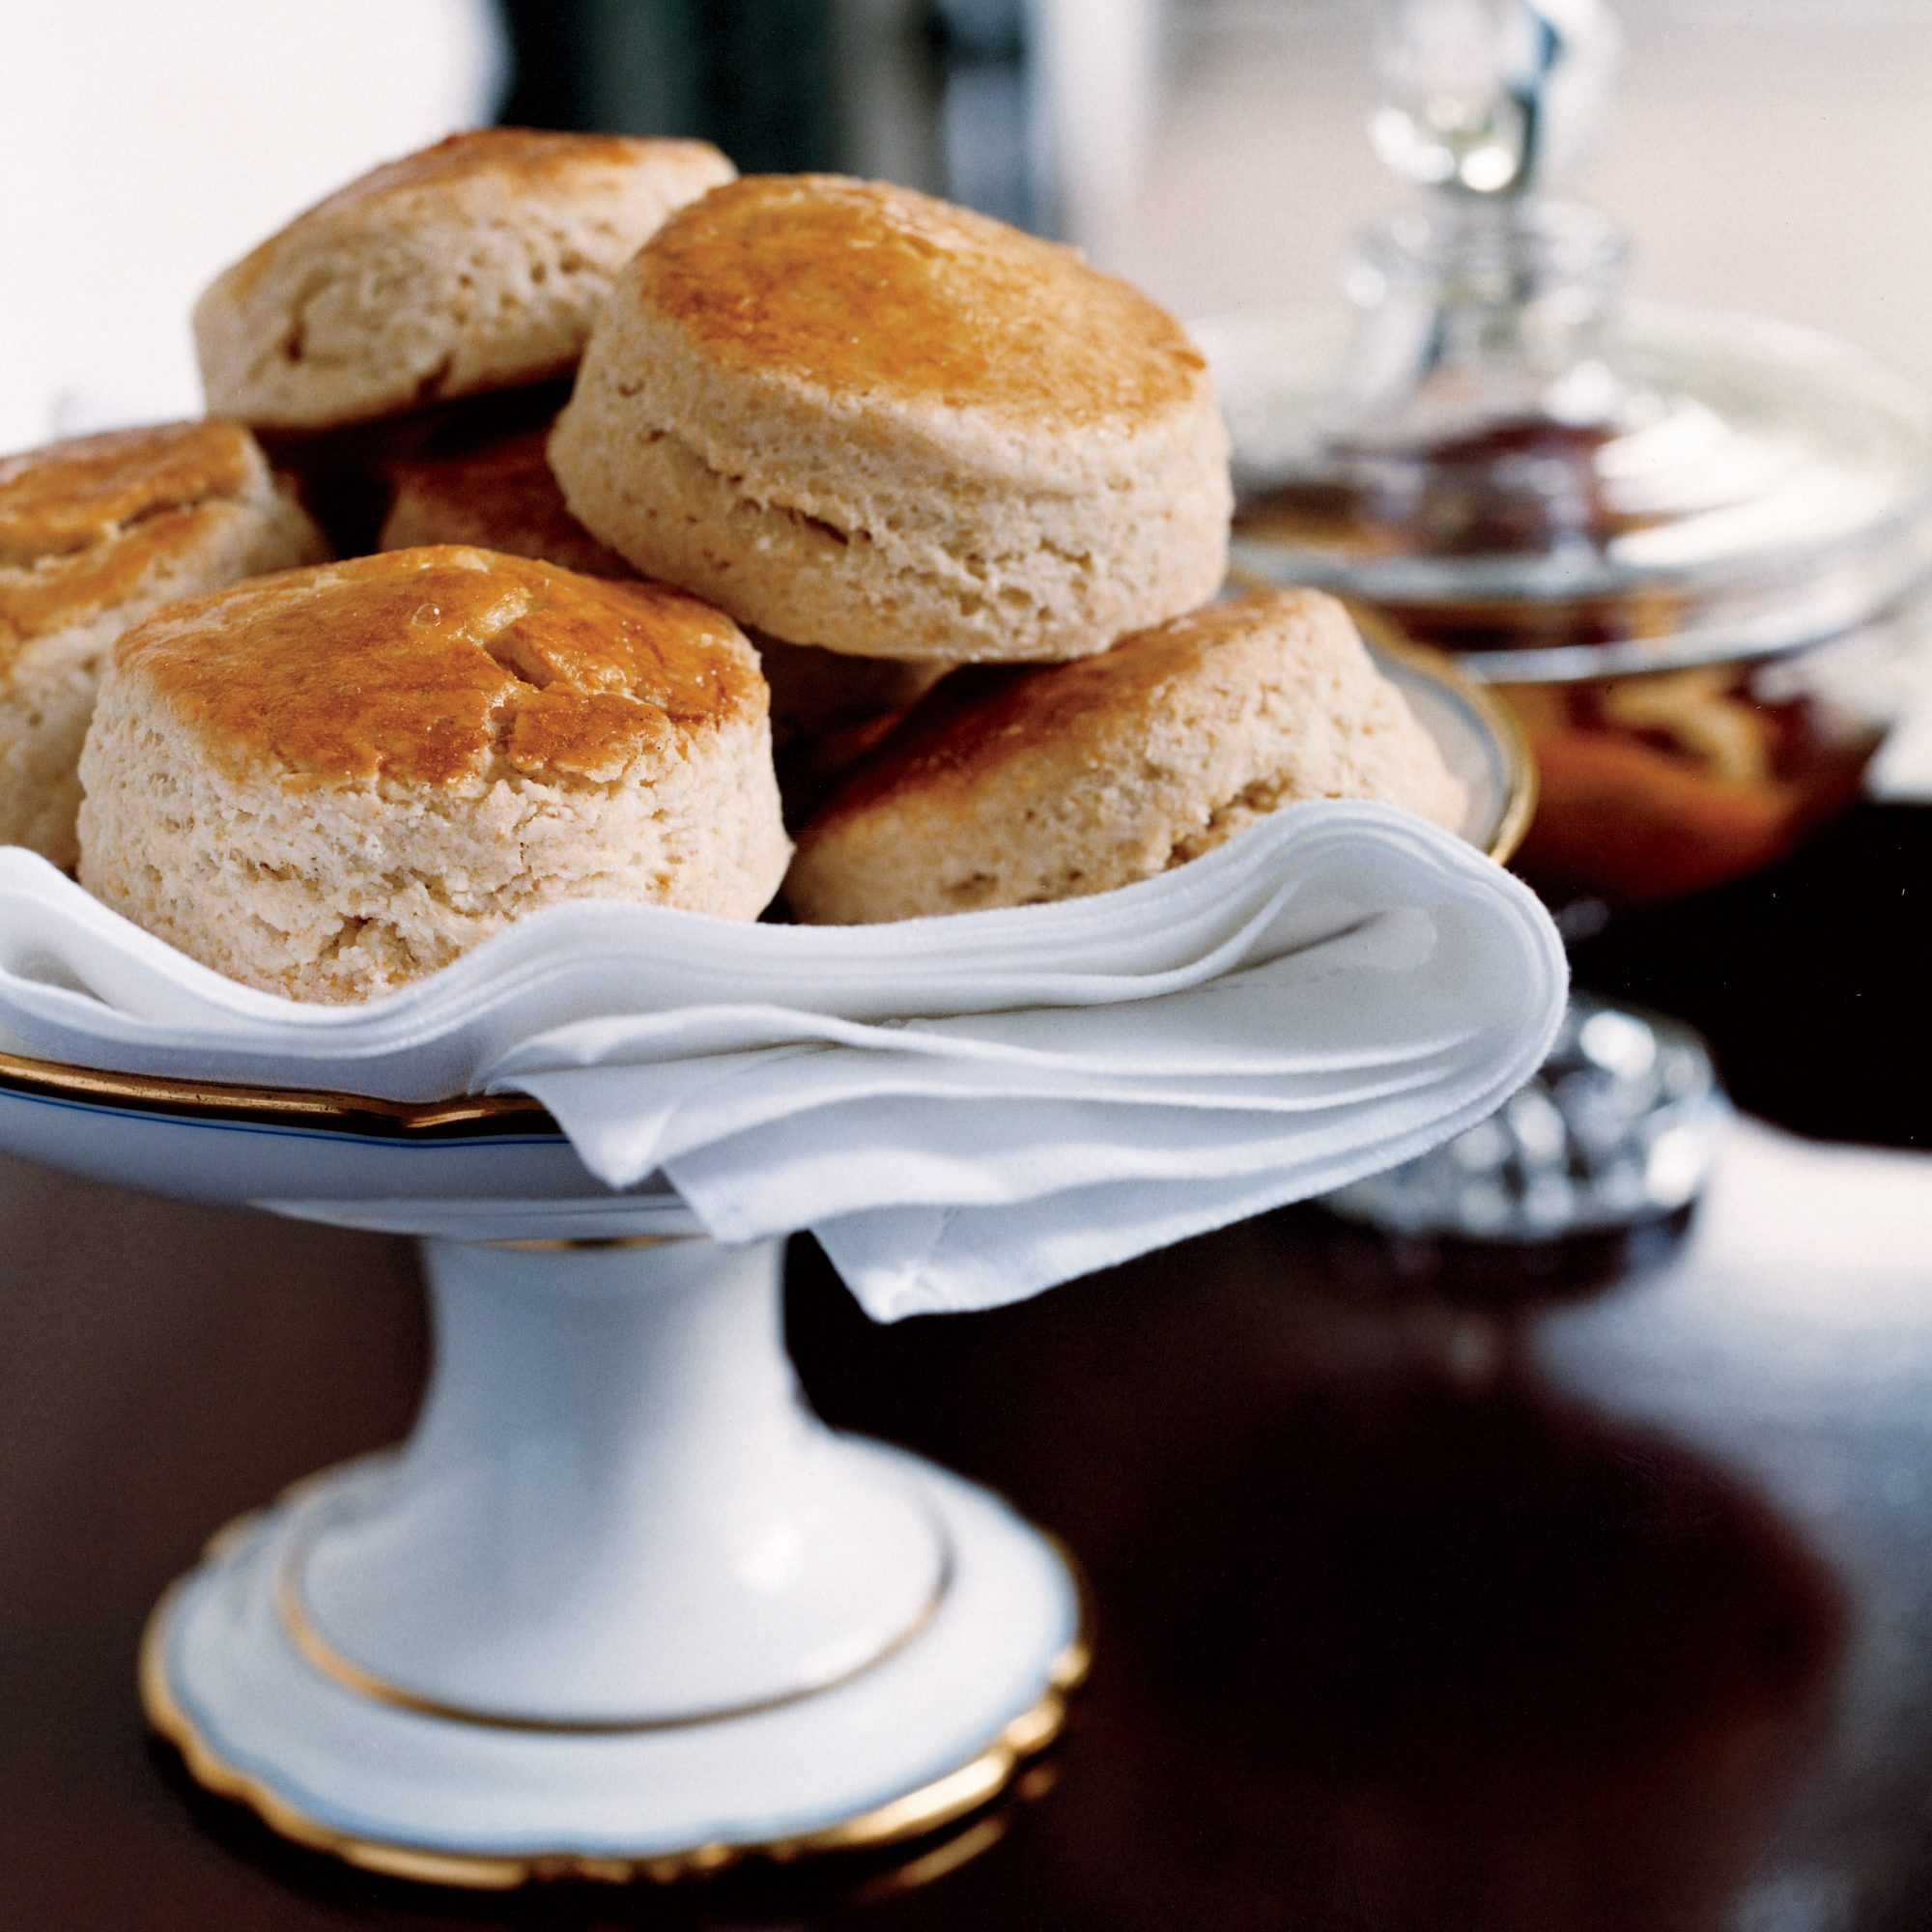 fw200511_biscuits.jpg